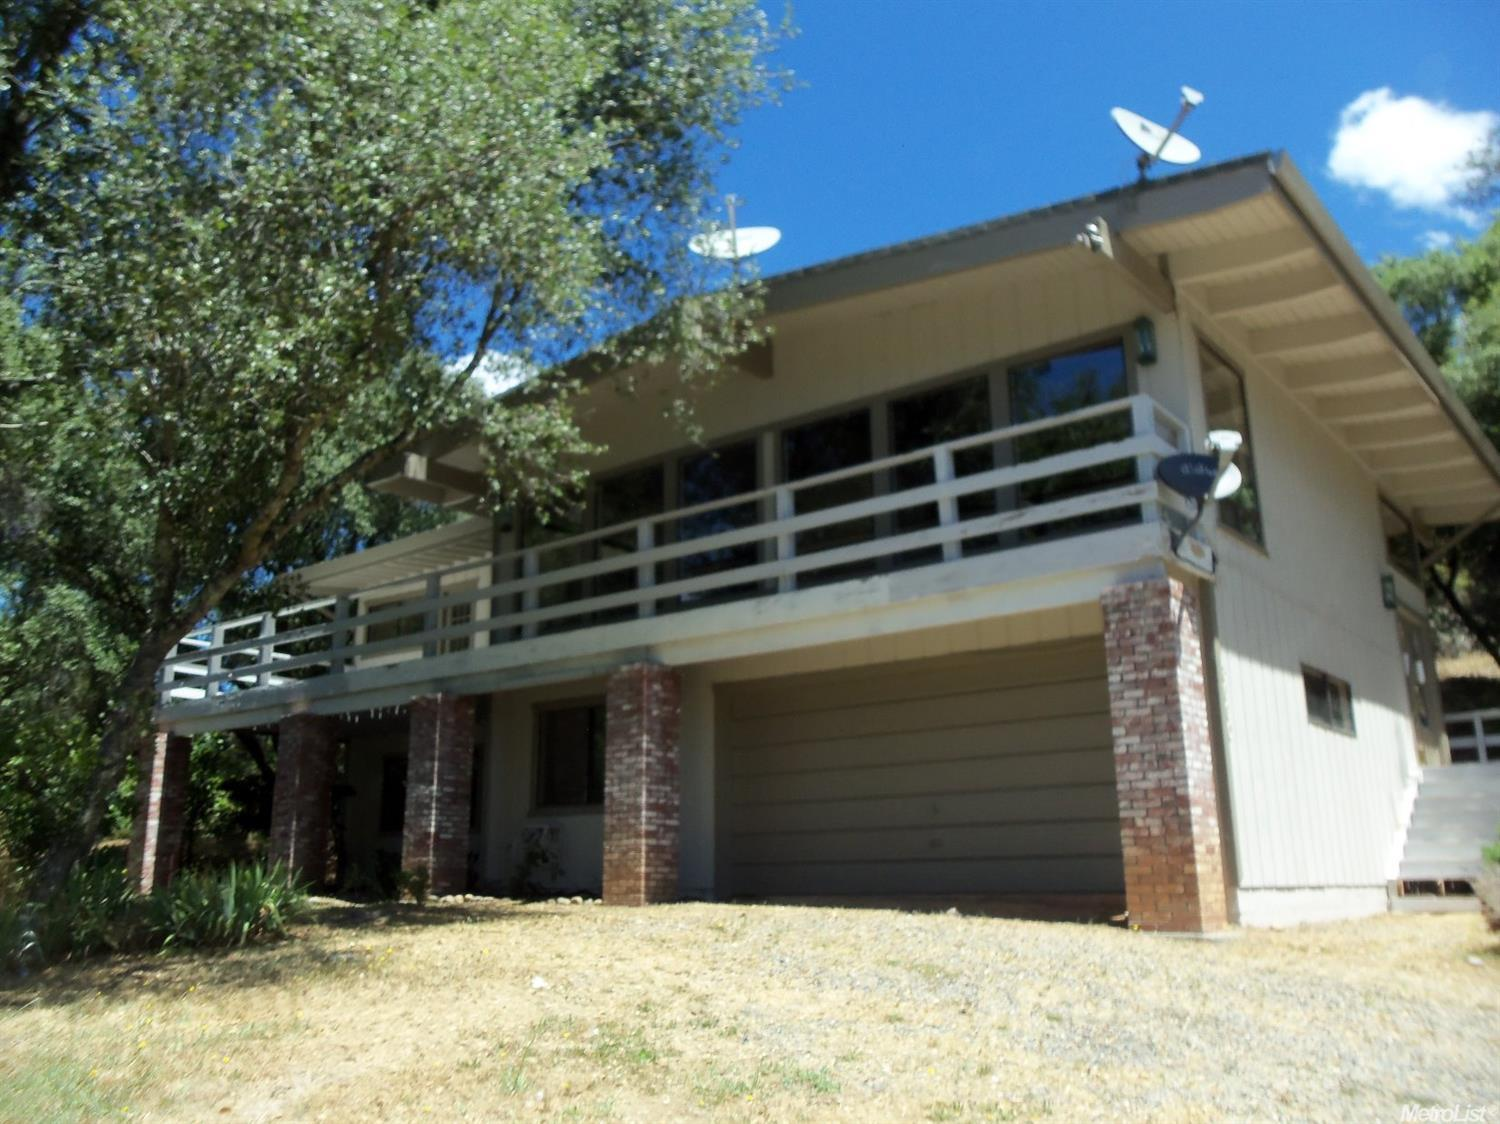 3690 Rothgarden Ct, Placerville, CA 95667